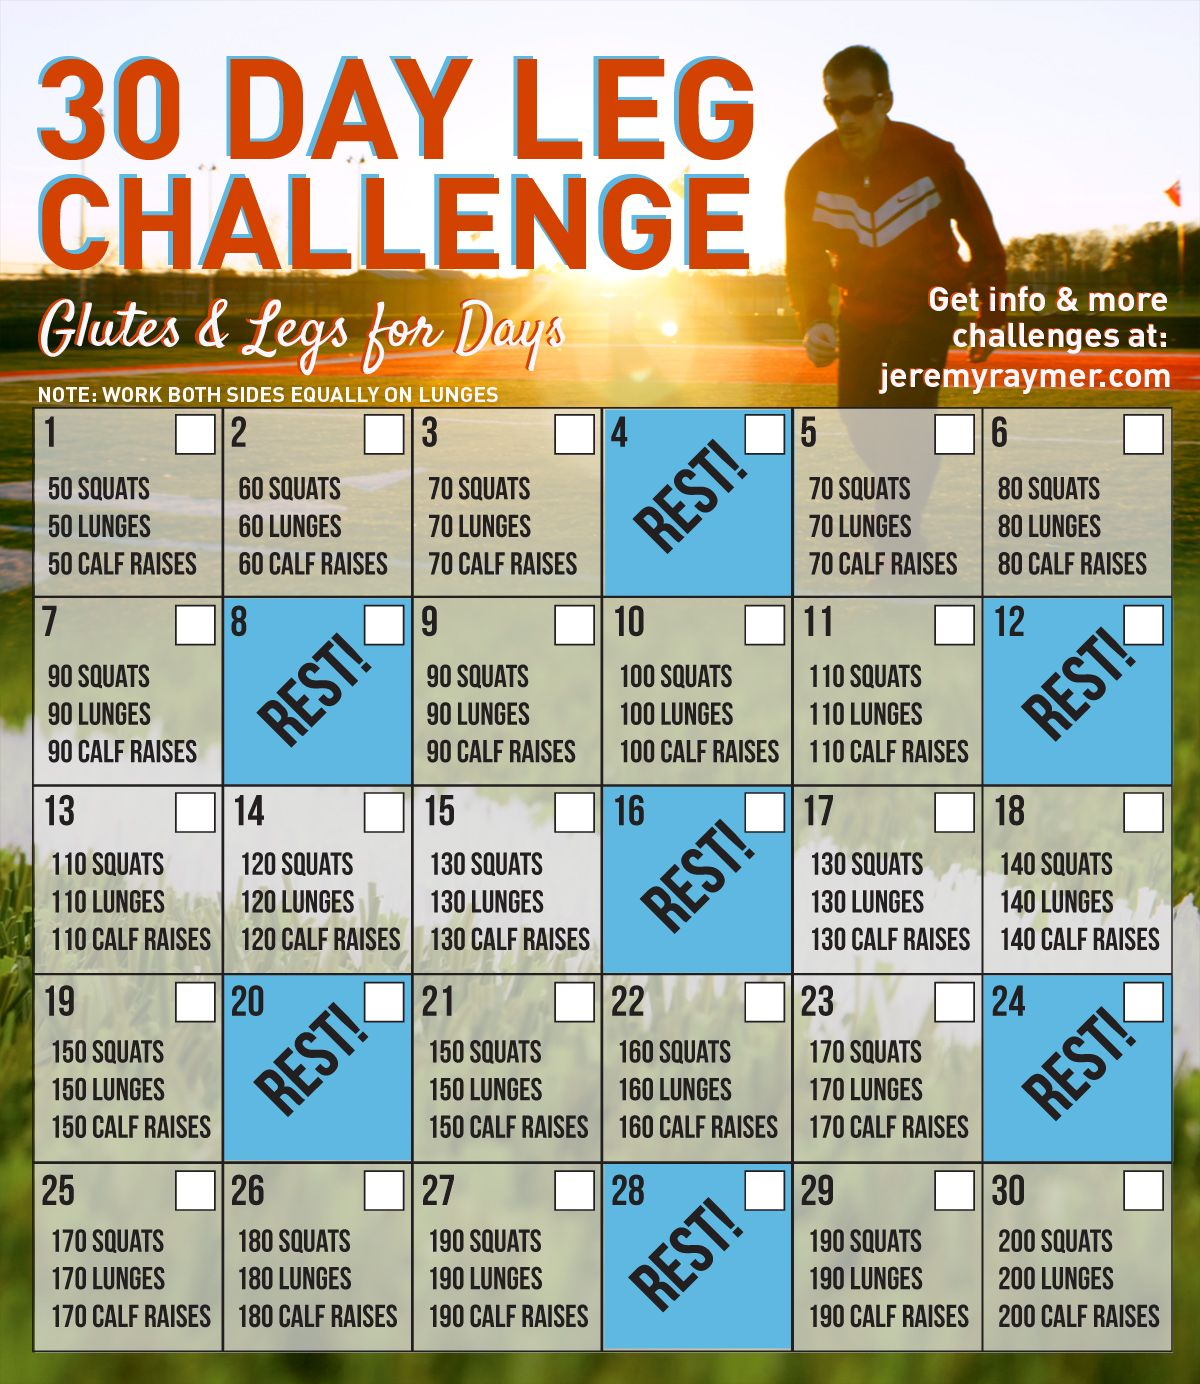 Take On This Fun 30 Day Leg Challenge With Glutes And Legs